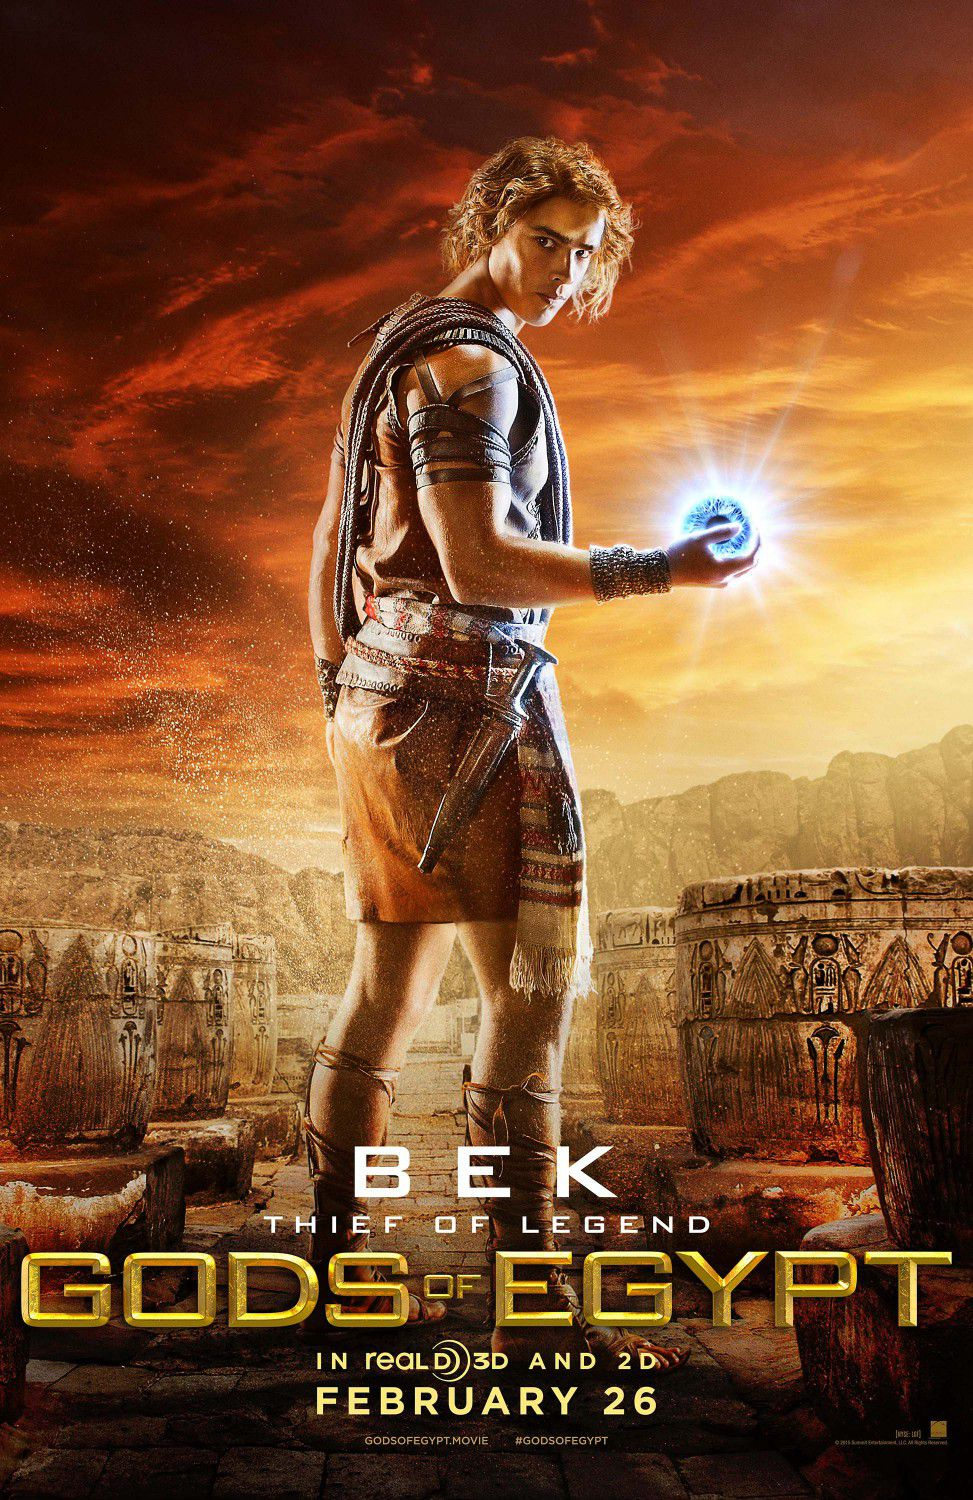 Brenton Thwaites as Bek